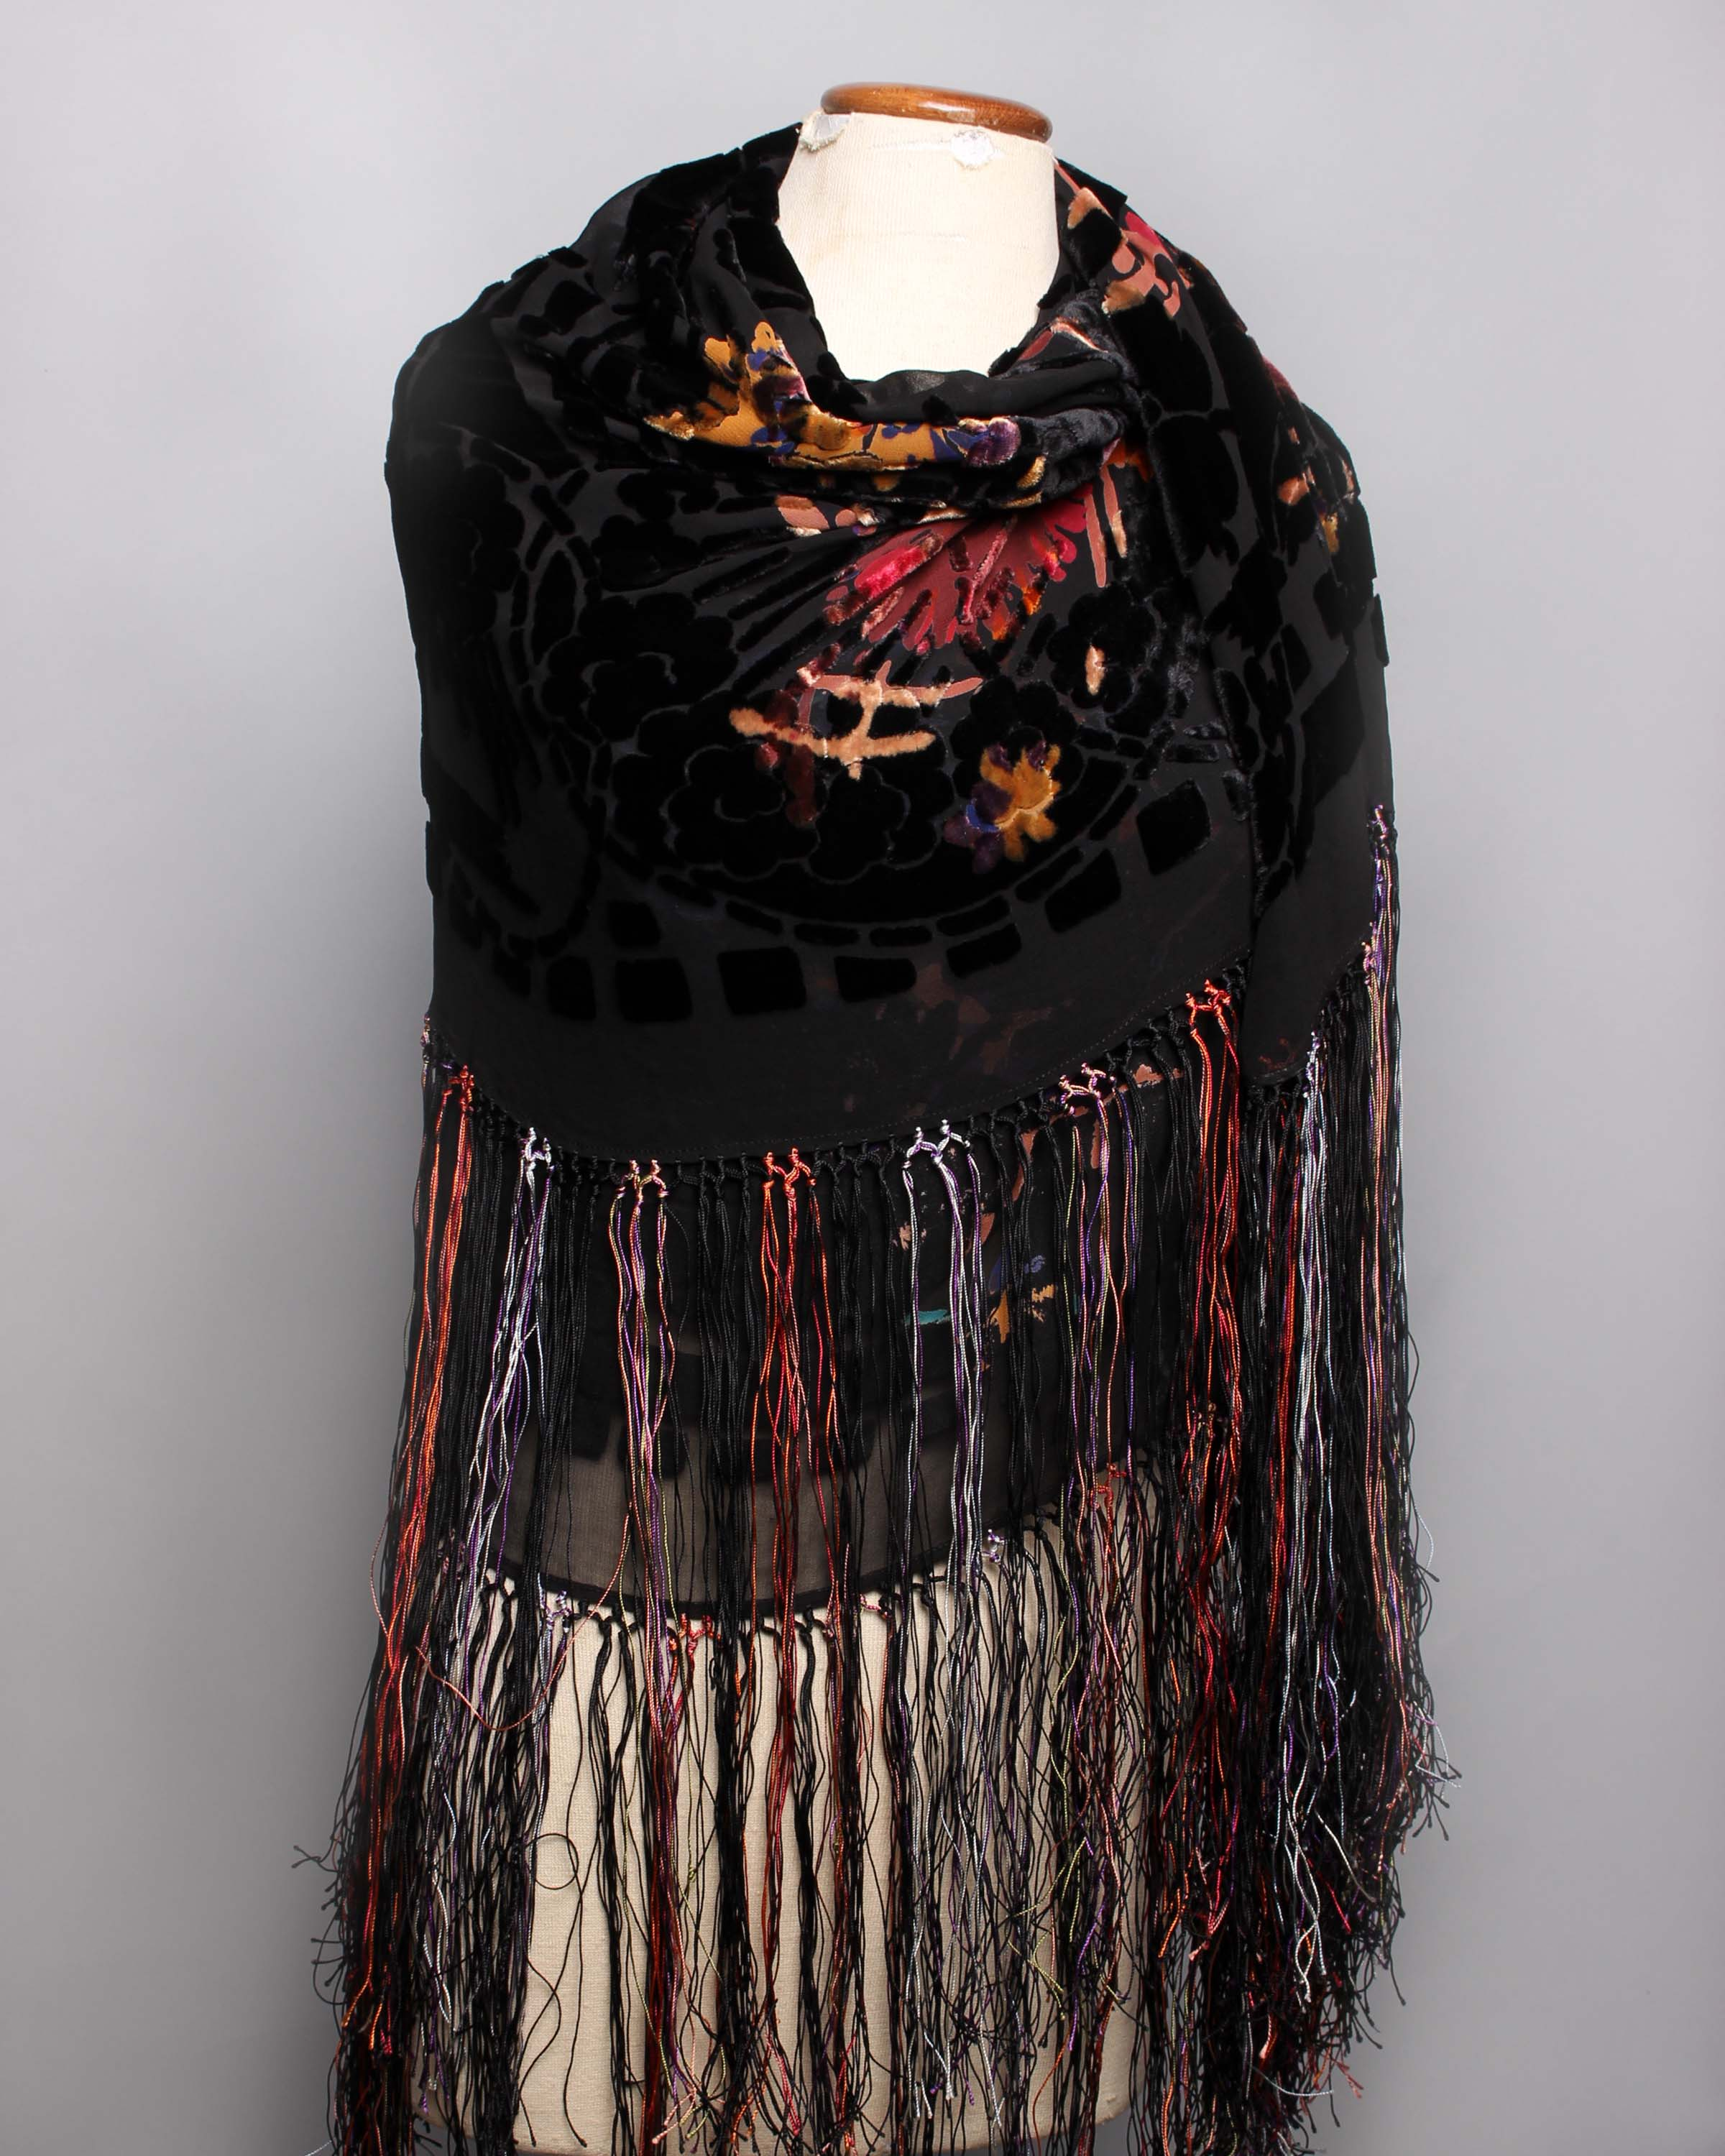 Lot 52 - An early 20th Century black silk devoré fringed shawl, decorated with colourful stylised flowers.